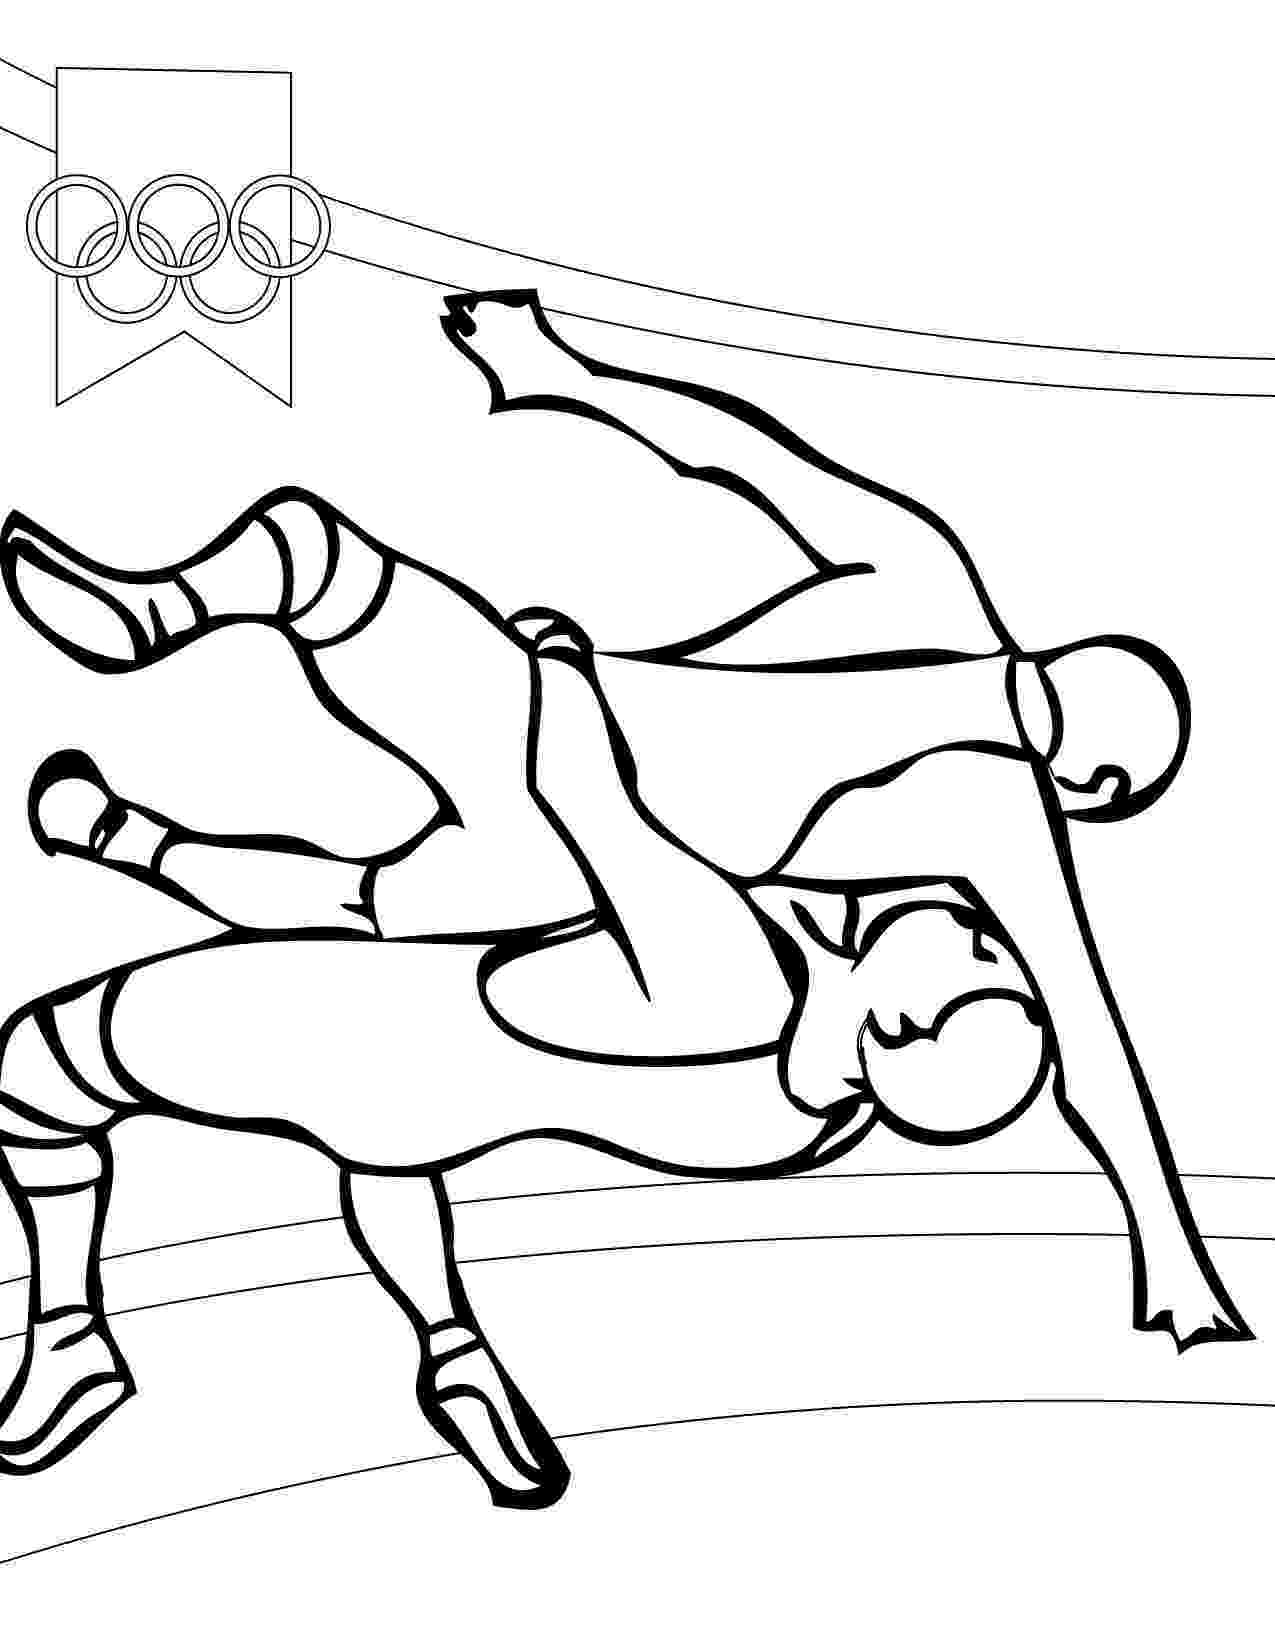 wwe coloring games wrestling coloring pages free online games videos for games coloring wwe